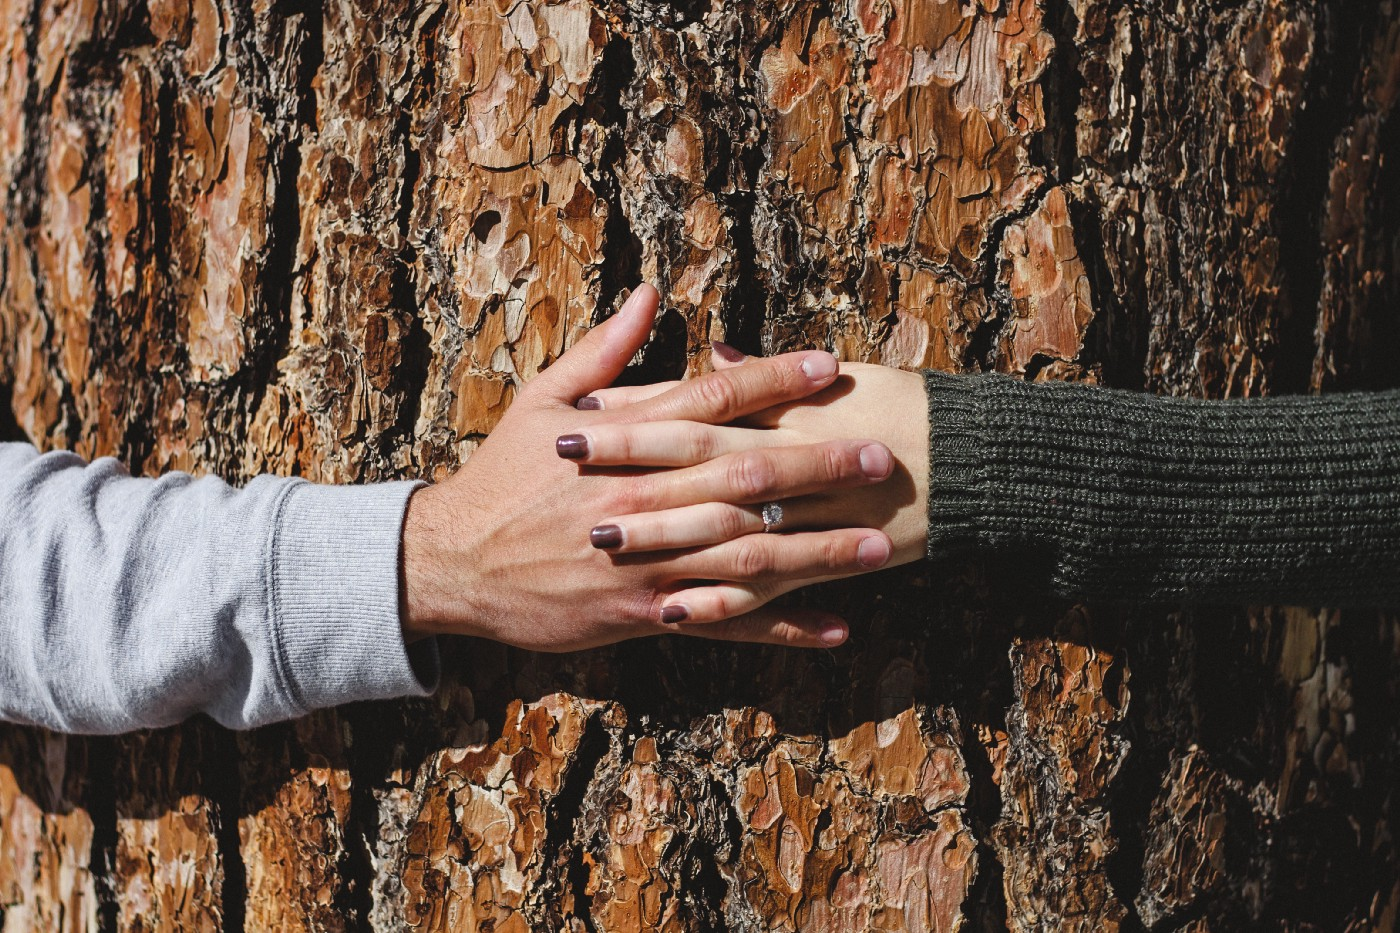 A close shot of two hands intertwined (male and female) while hugging a tree.